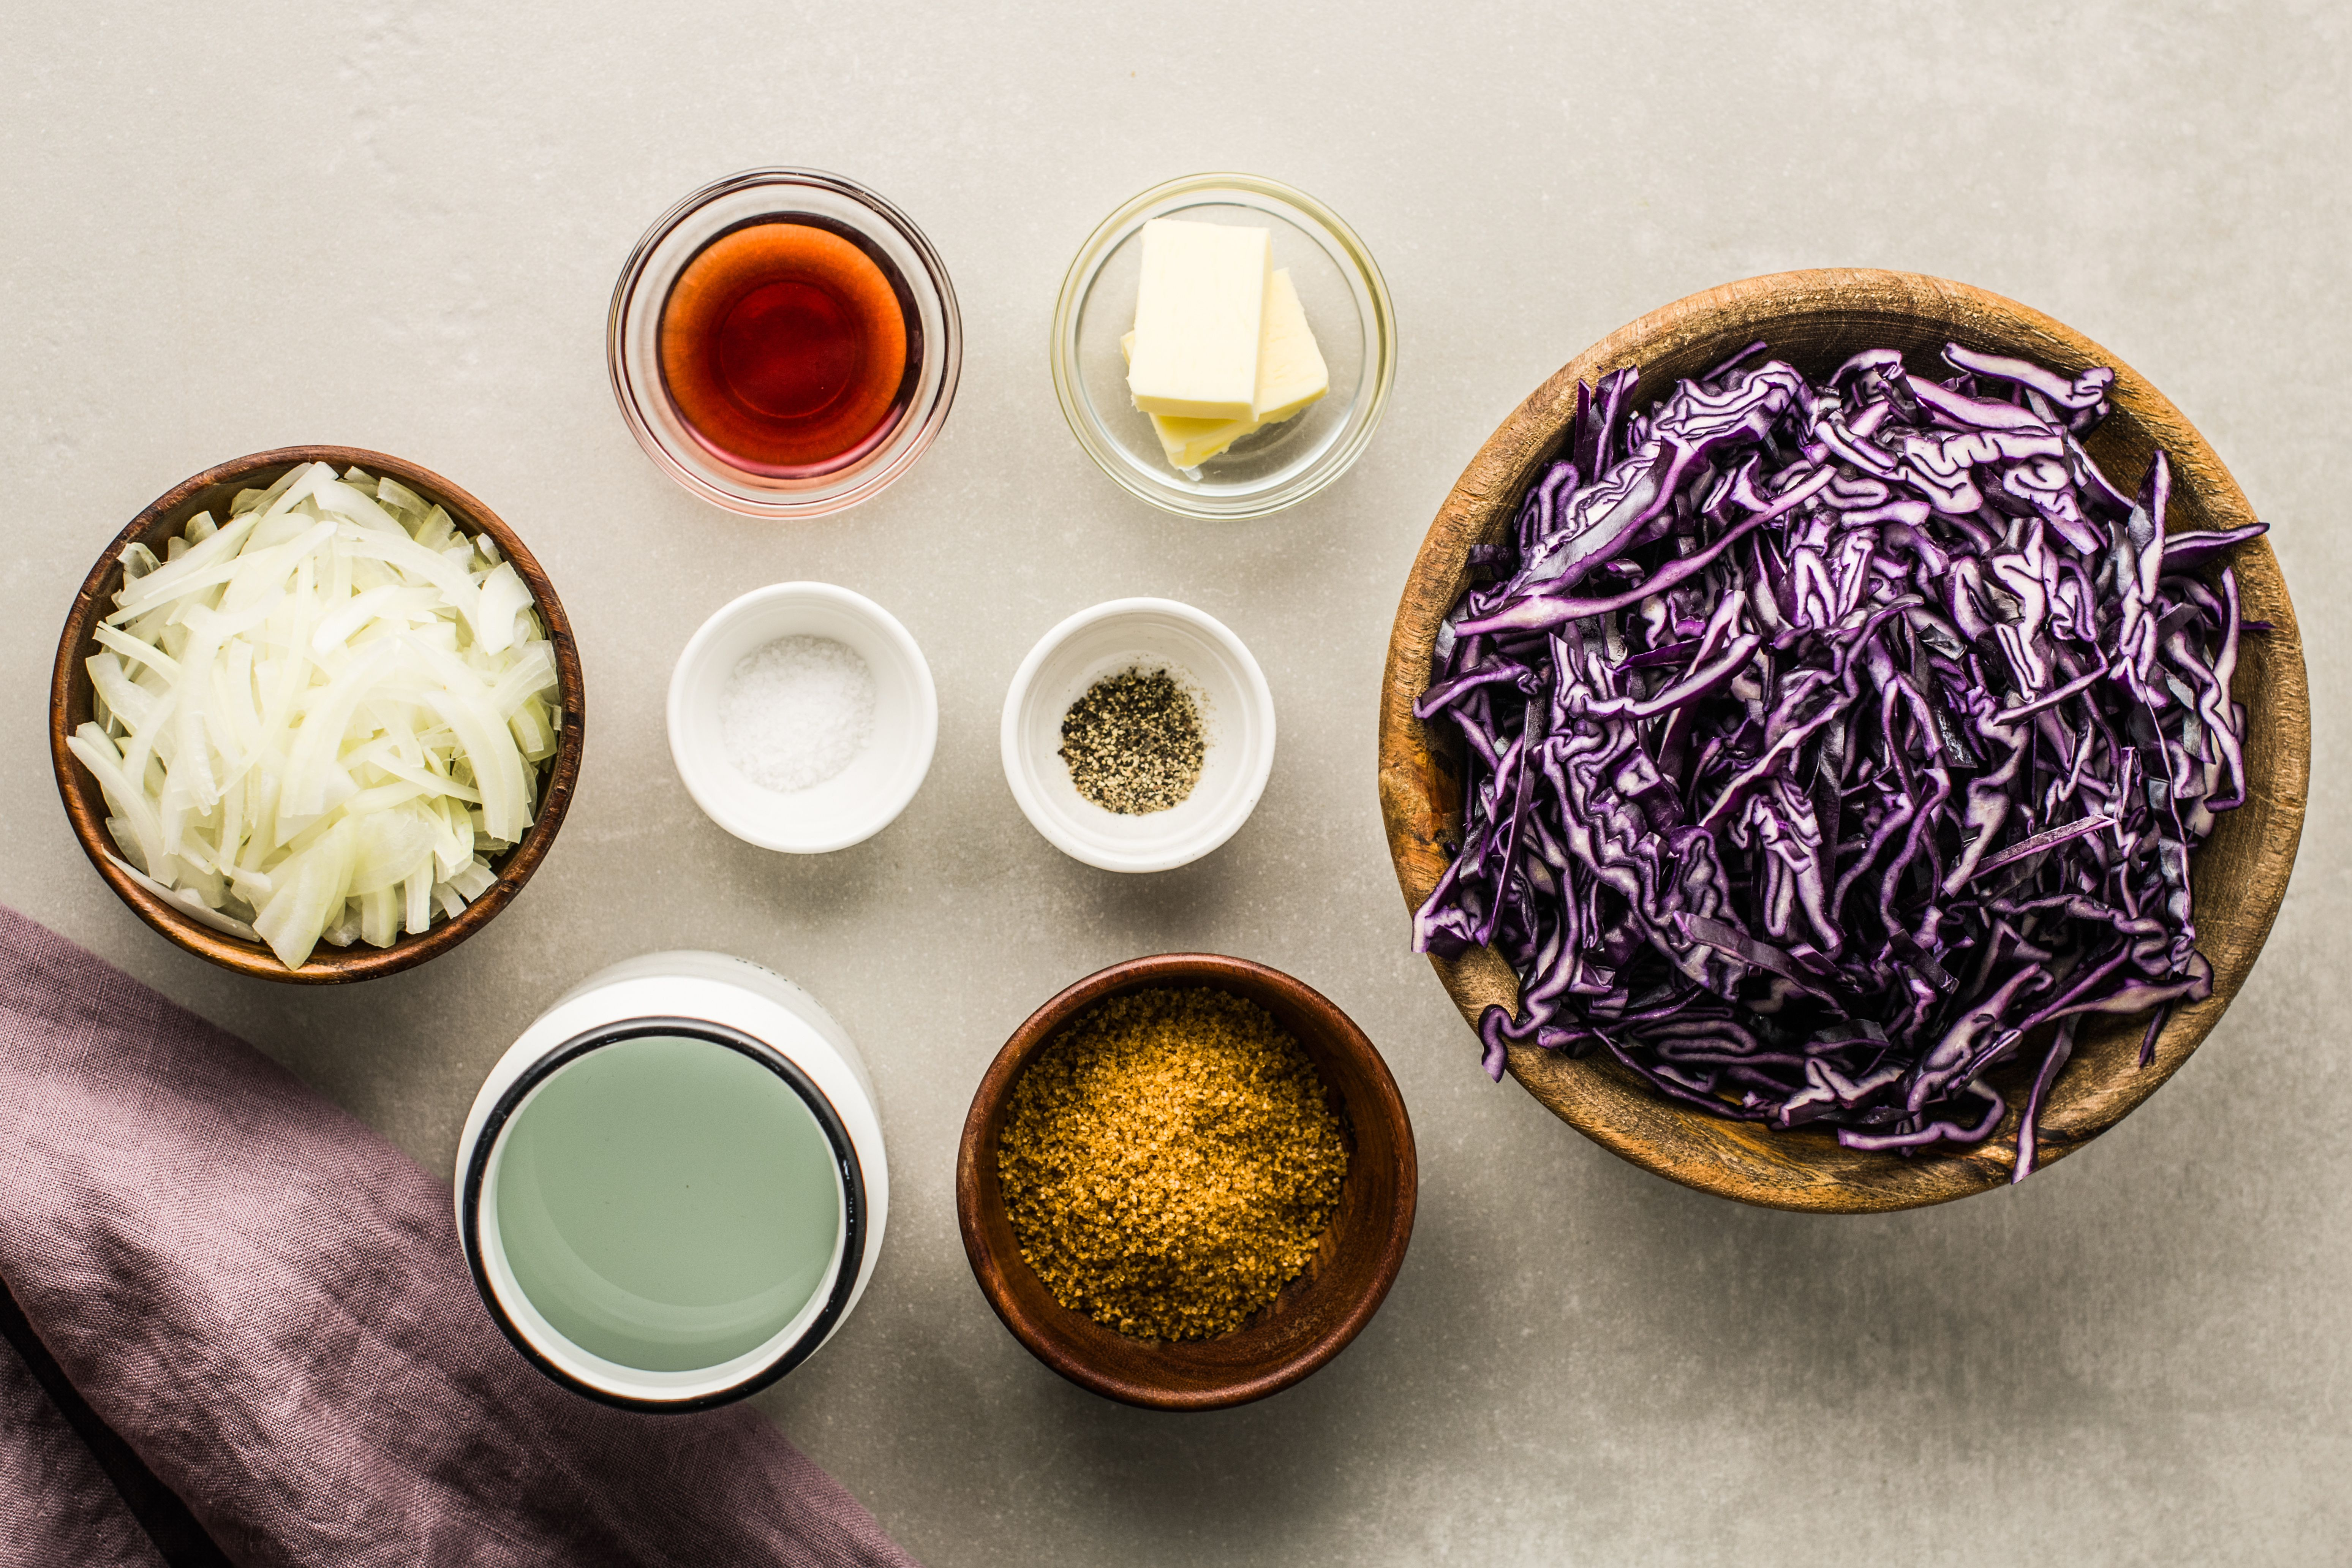 Ingredients for Polish braised red cabbage